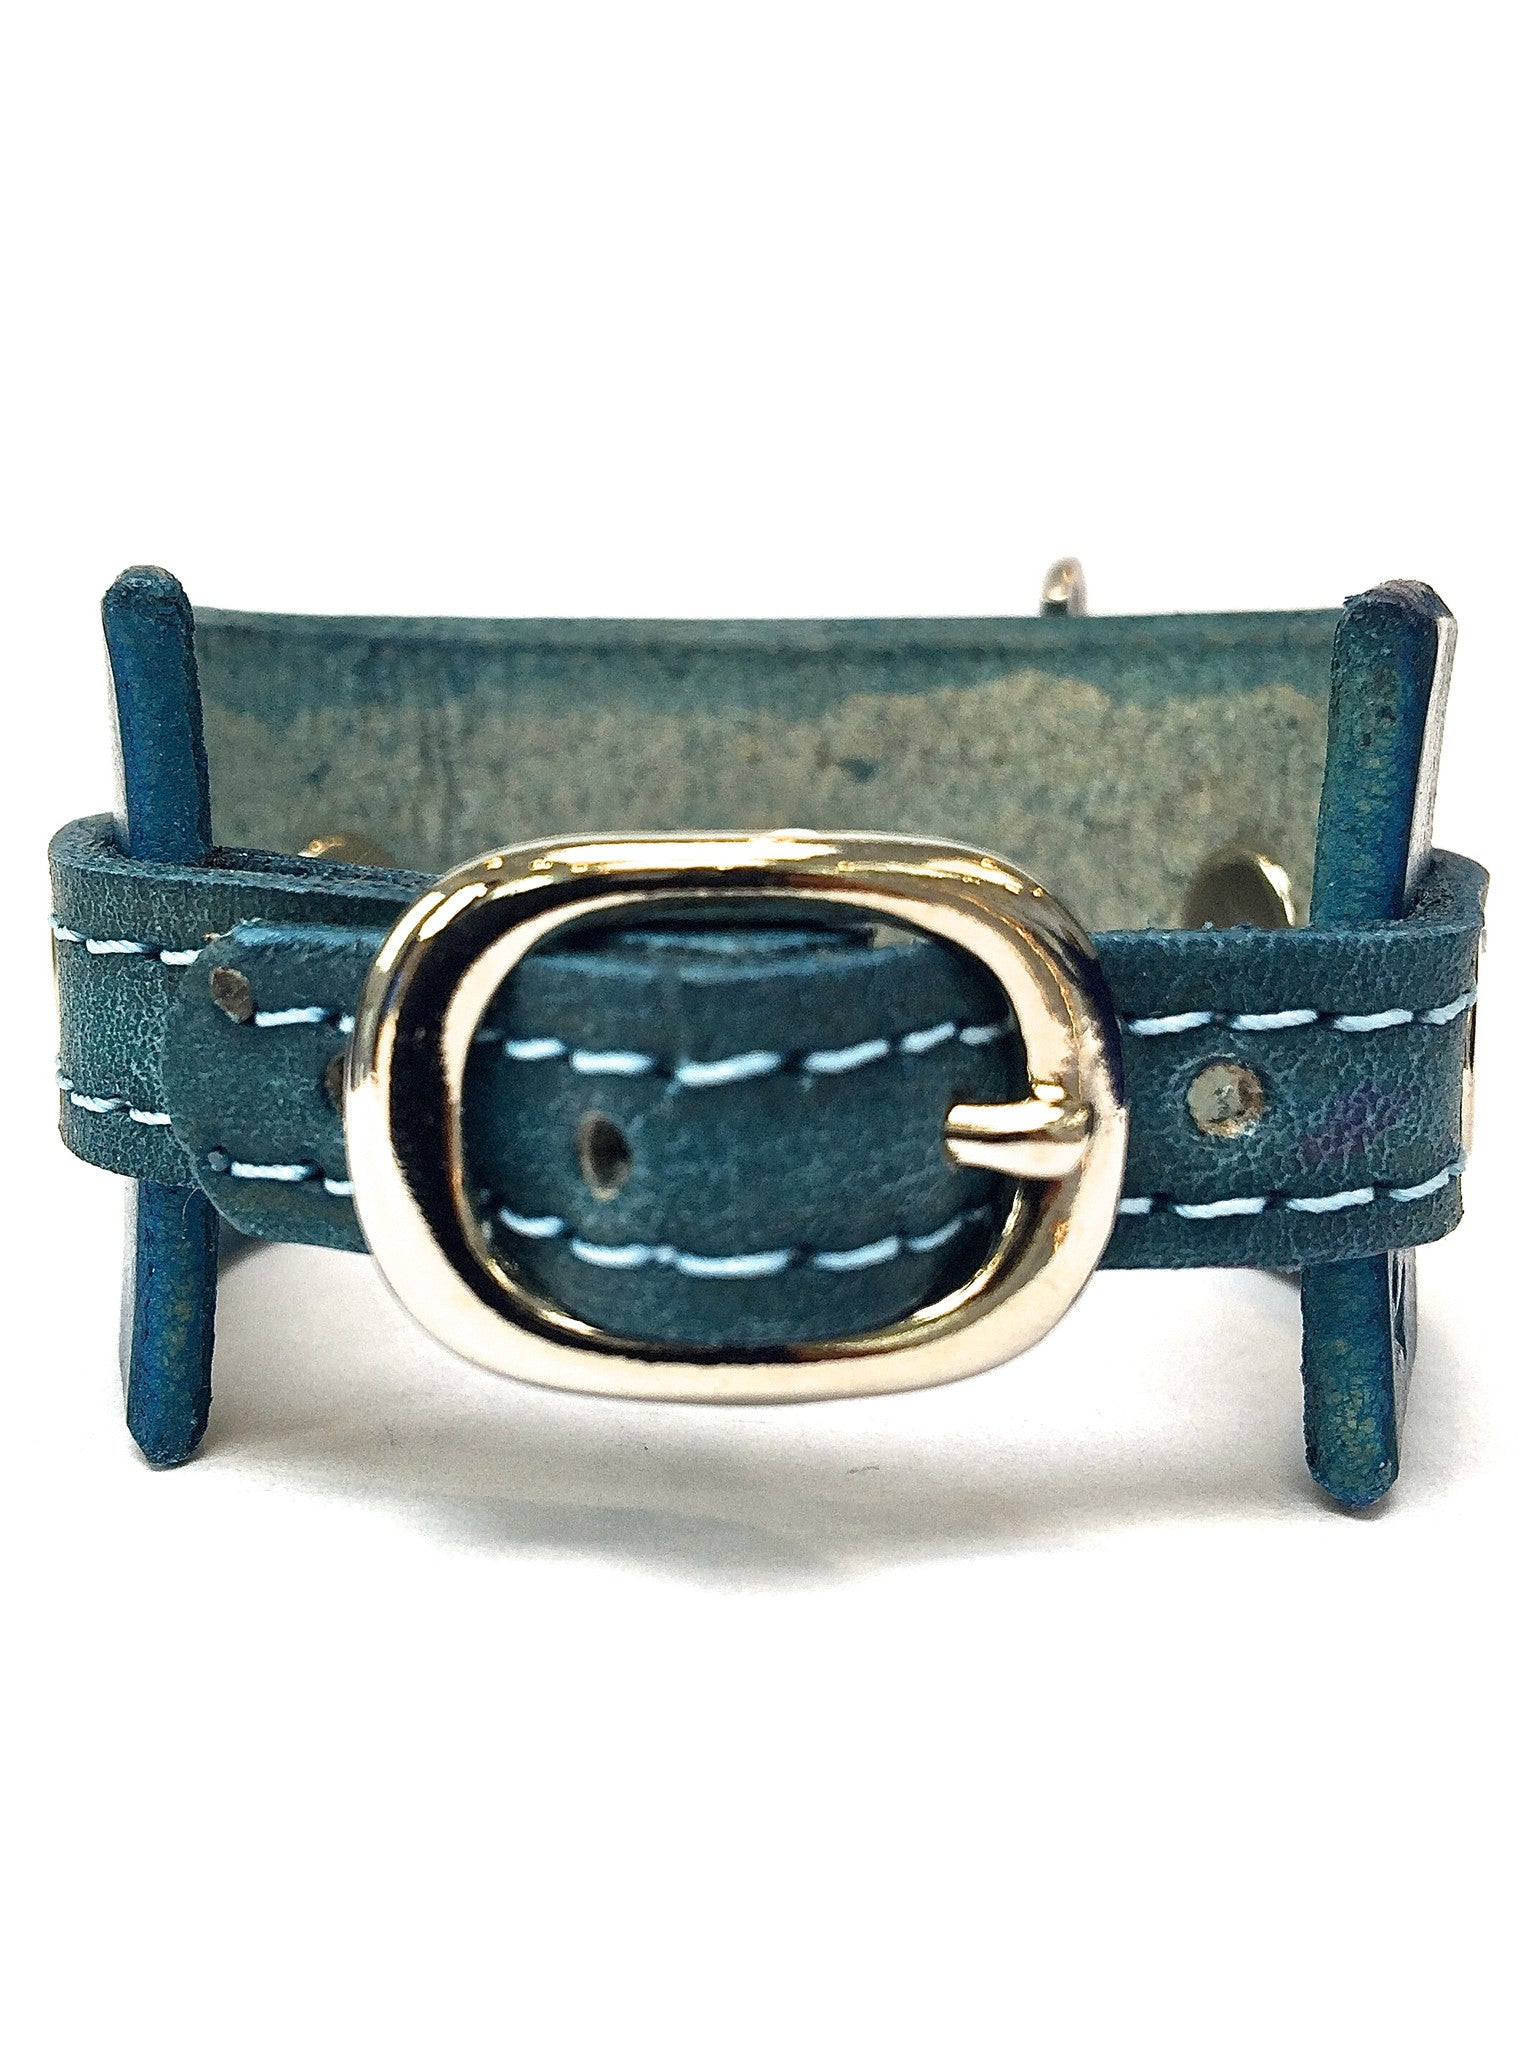 leather cuff with anchor shackle Dark Turquoise by nyet jewelry.